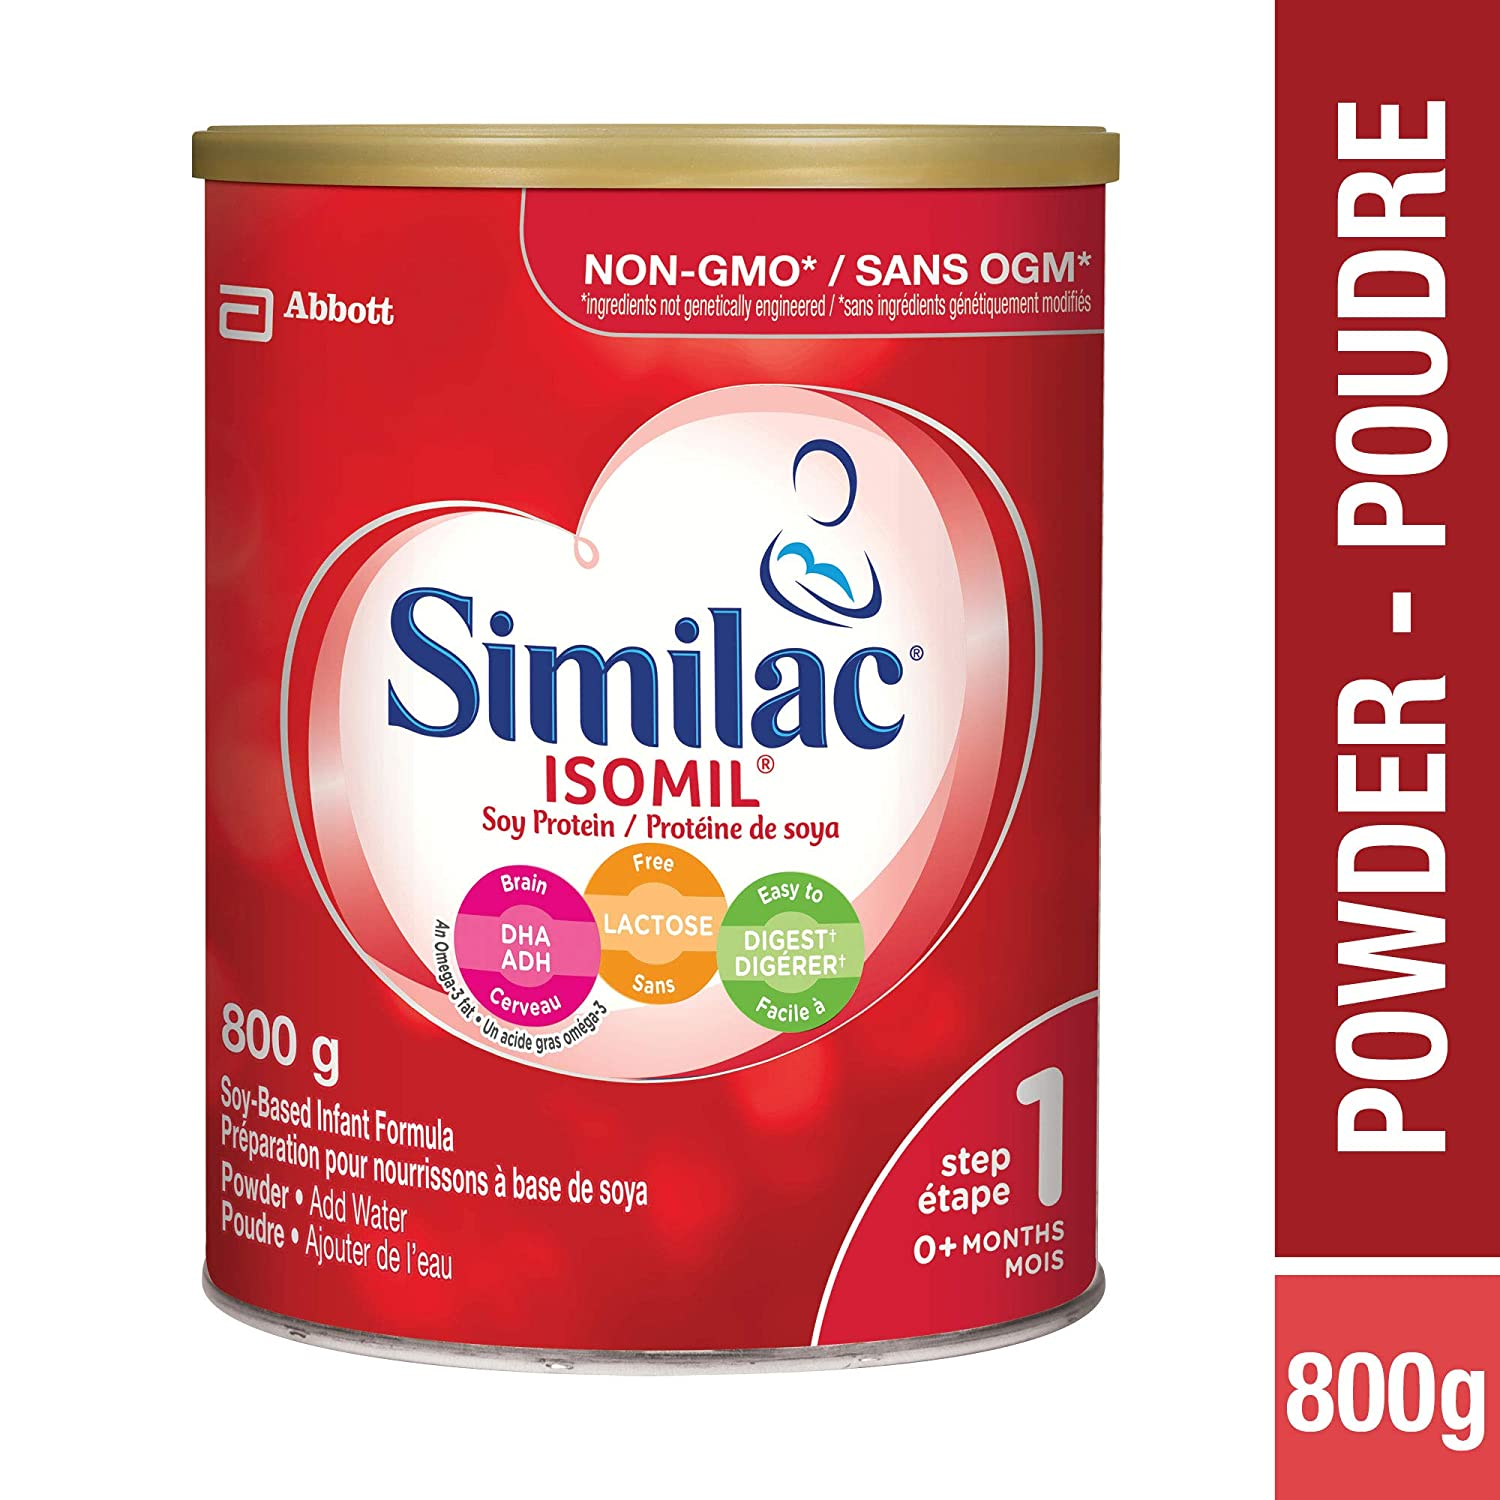 Abbott Laboratories Similac Isomil with Dha Step 1 Powder, 800g Abbott Laboratories Canada ca health and personal care ABC6O 0S571353